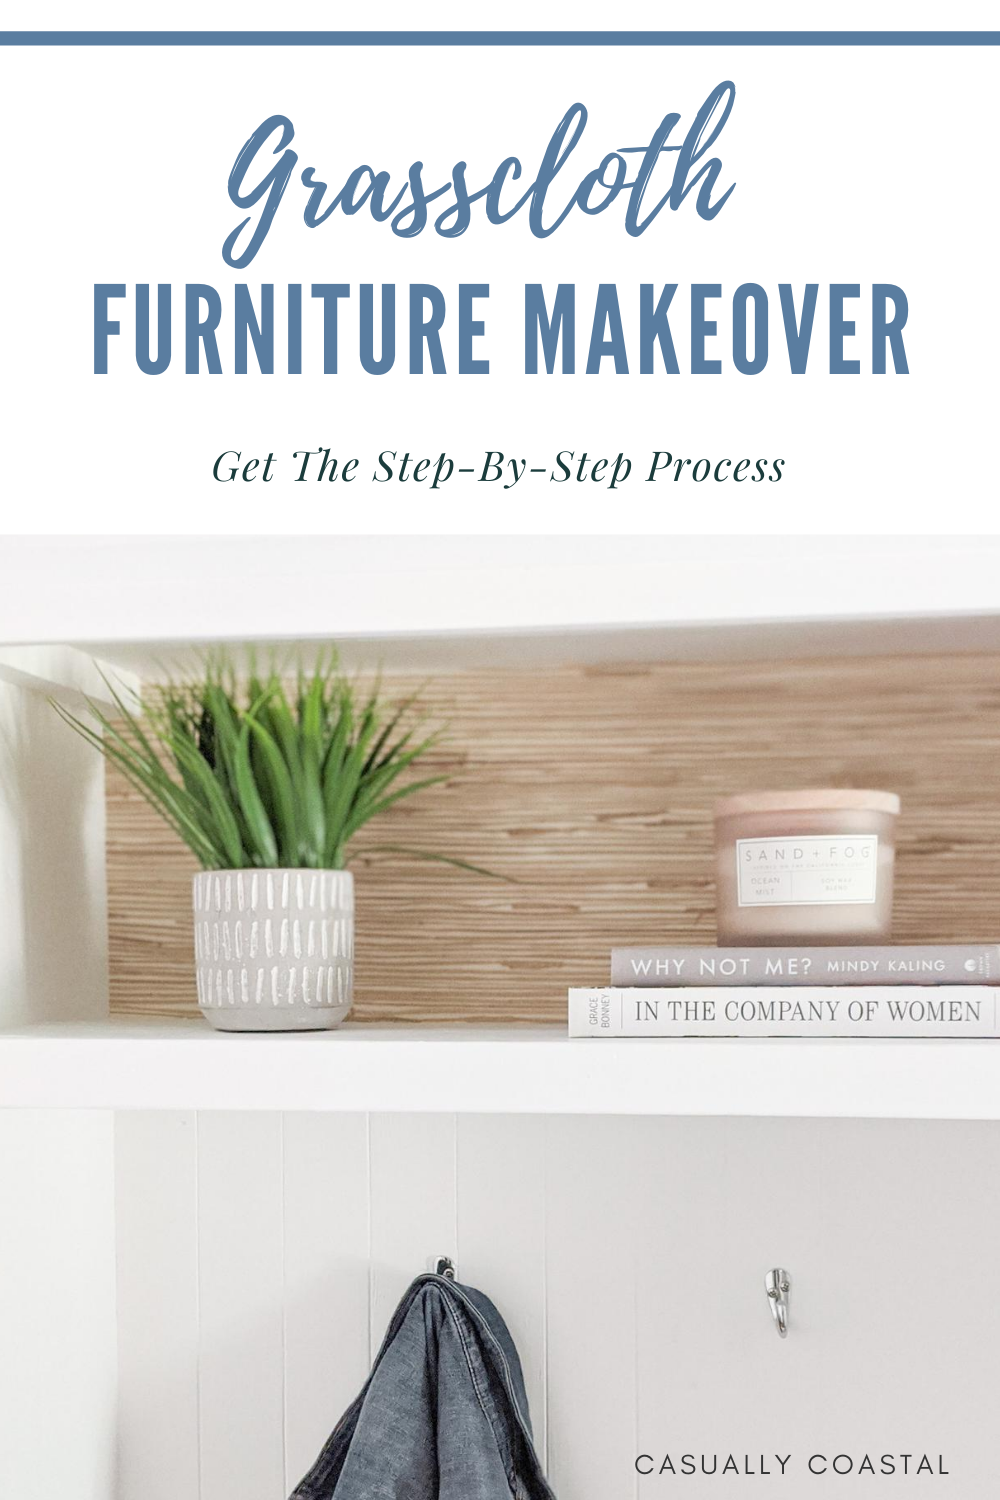 A Grasscloth Furniture Makeover: From Basic To Beachy